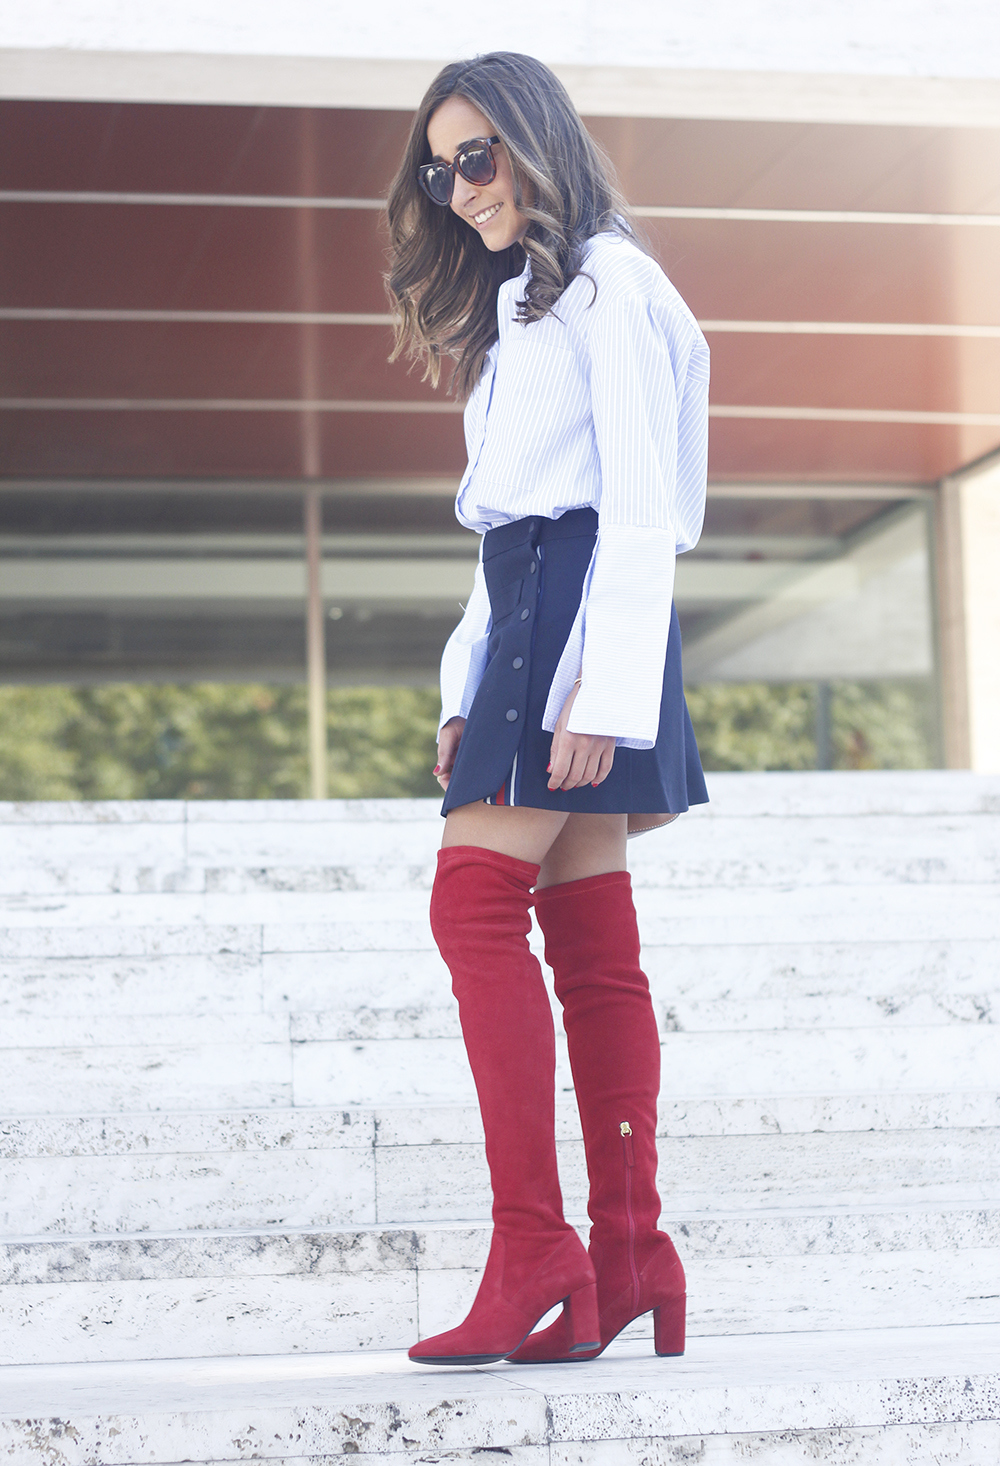 Red over the knee boots blue skirt sunnies accessories outfit style fashion03